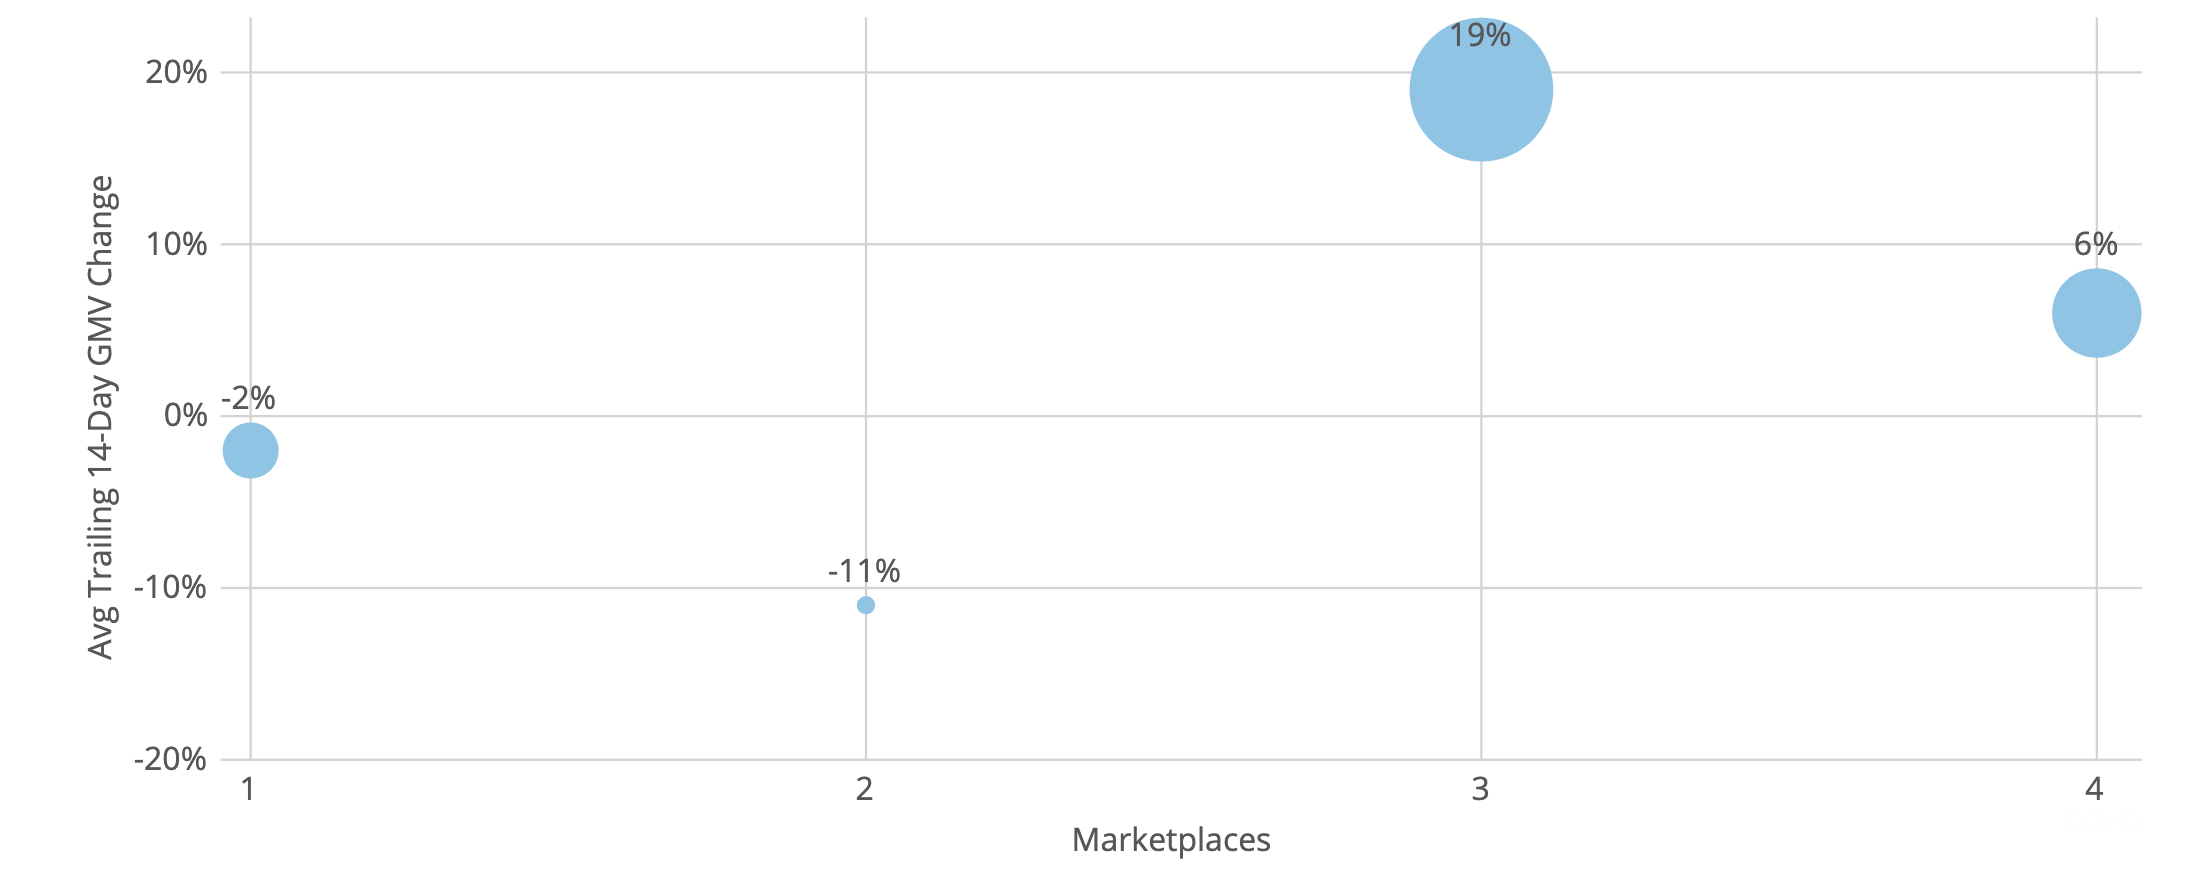 gmv growth rates of marketplace sellers during coronavirus pandemic